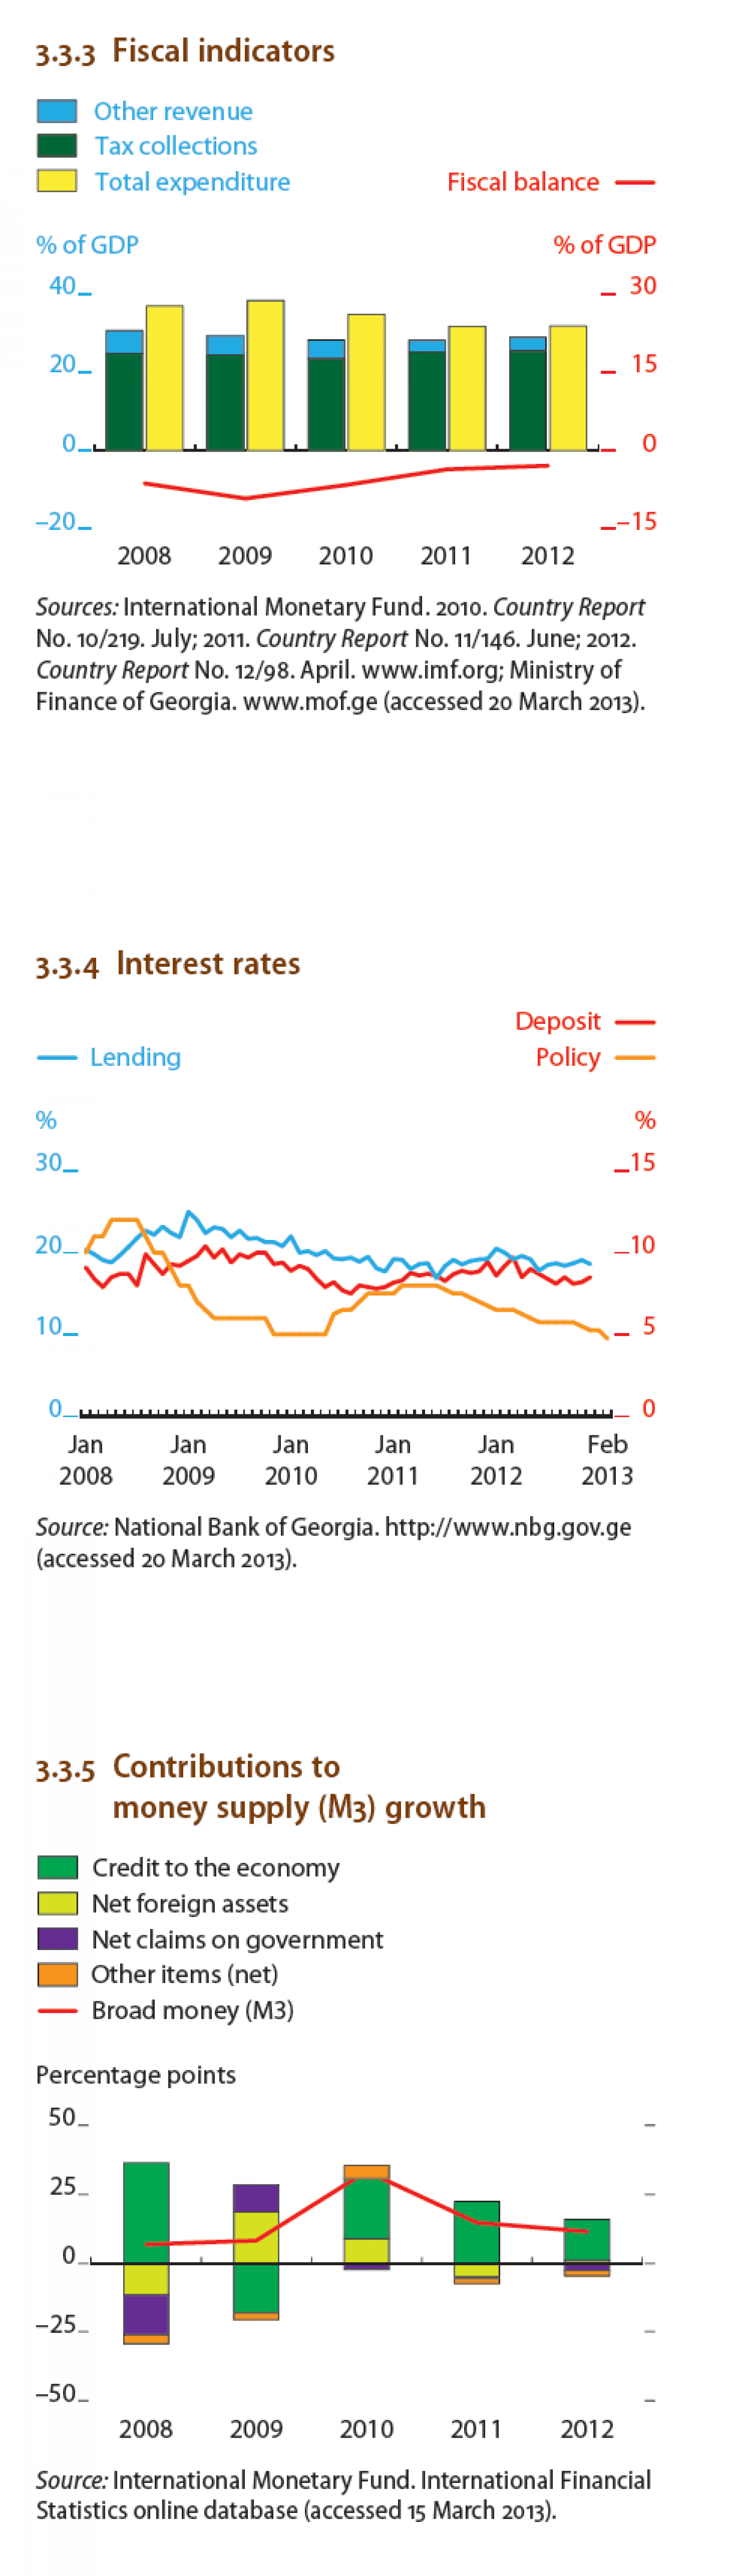 Georgia : Fiscal Indicator, Interest rates Infographic